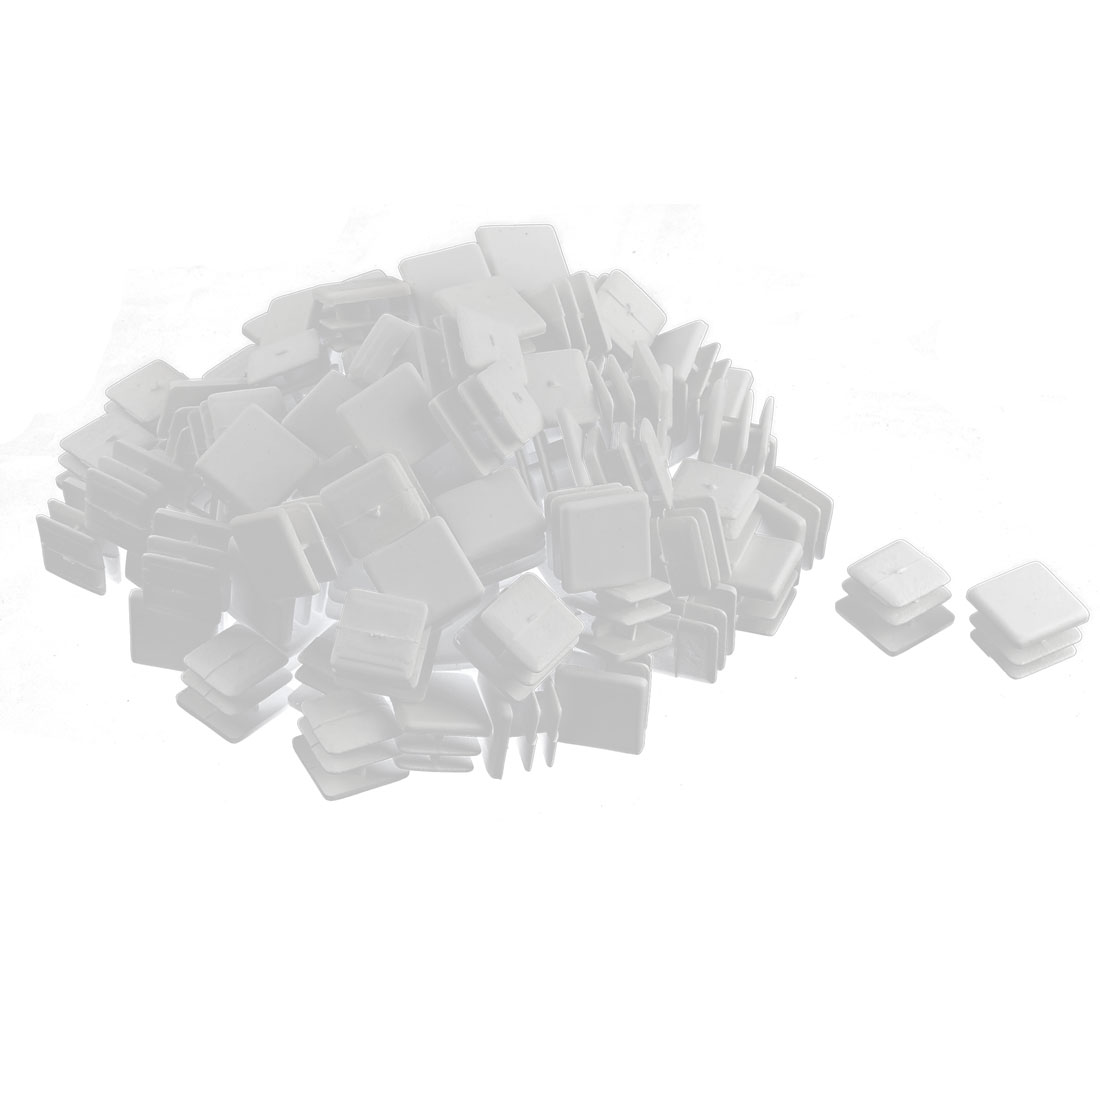 Plastic Square Tube Pipe Inserts End Blanking Caps White 15mmx15mm 100 Pcs